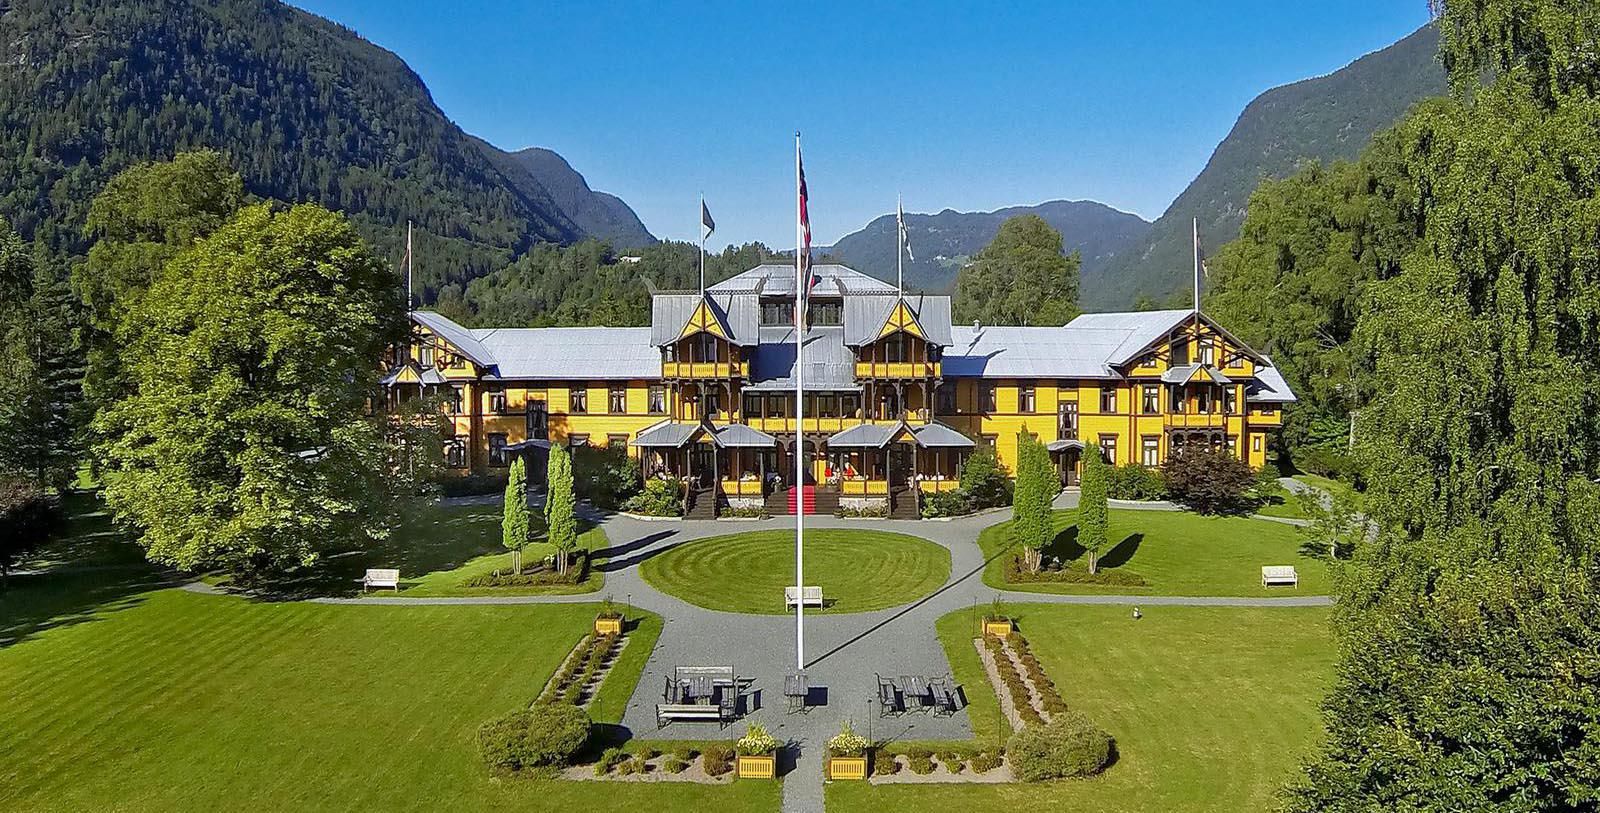 Image of hotel exterior Dalen Hotel, 1894, Member of Historic Hotels Worldwide, in Dalen, Norway, Special Offers, Discounted Rates, Families, Romantic Escape, Honeymoons, Anniversaries, Reunions